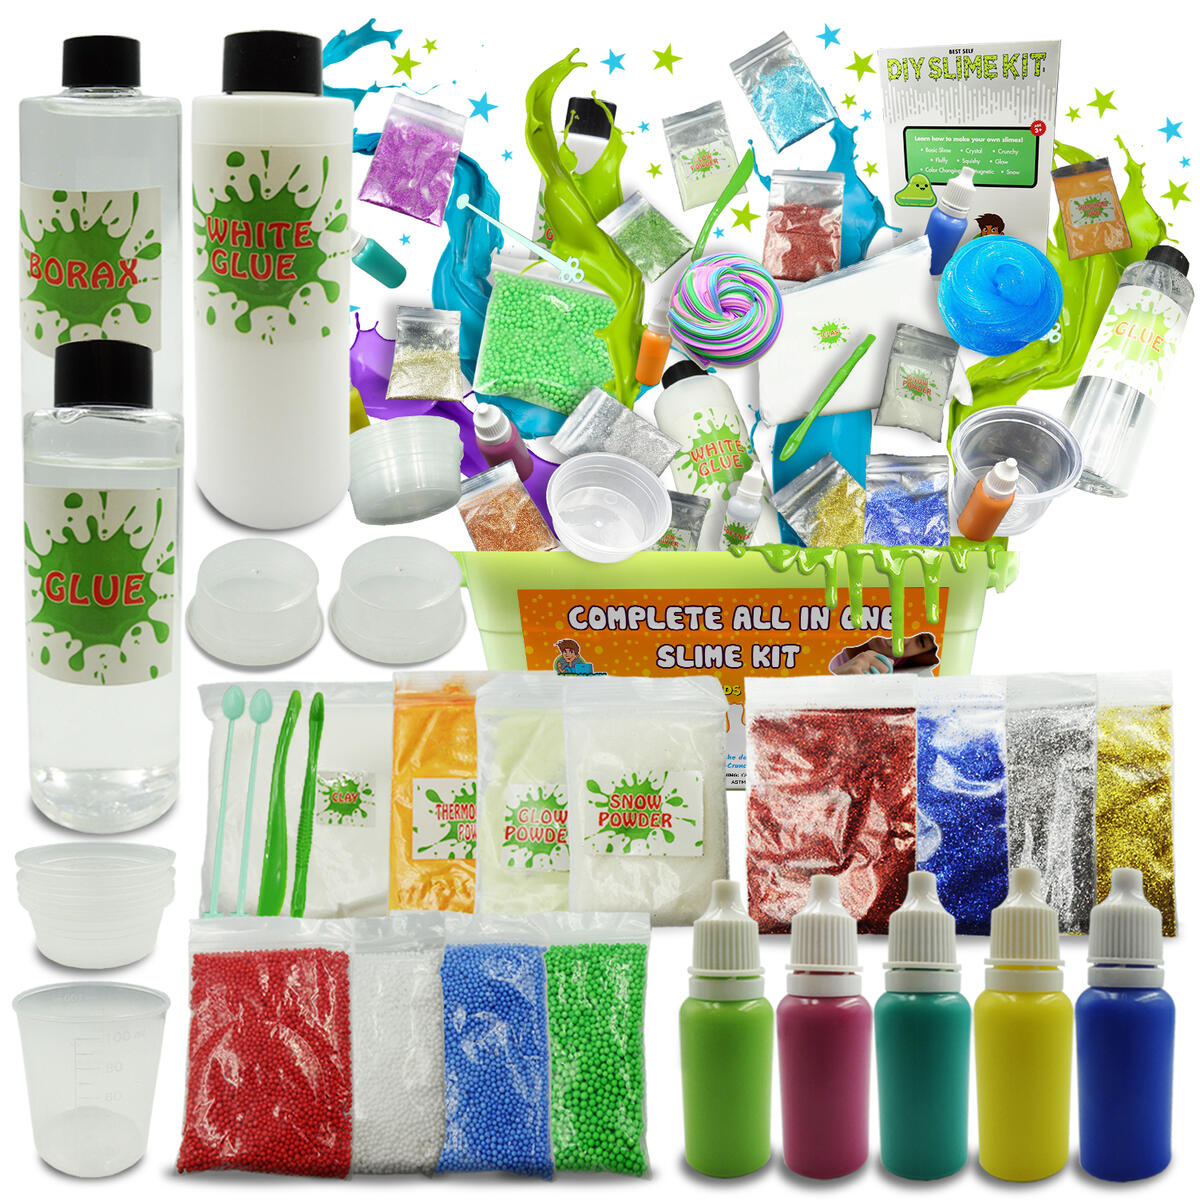 Slime Kit 47 PCS Complete DIY Making Fluffy Glow In the Dark Girls Boys Package Deal Rugged Container Glitter Borax Glue All In One Kit Set